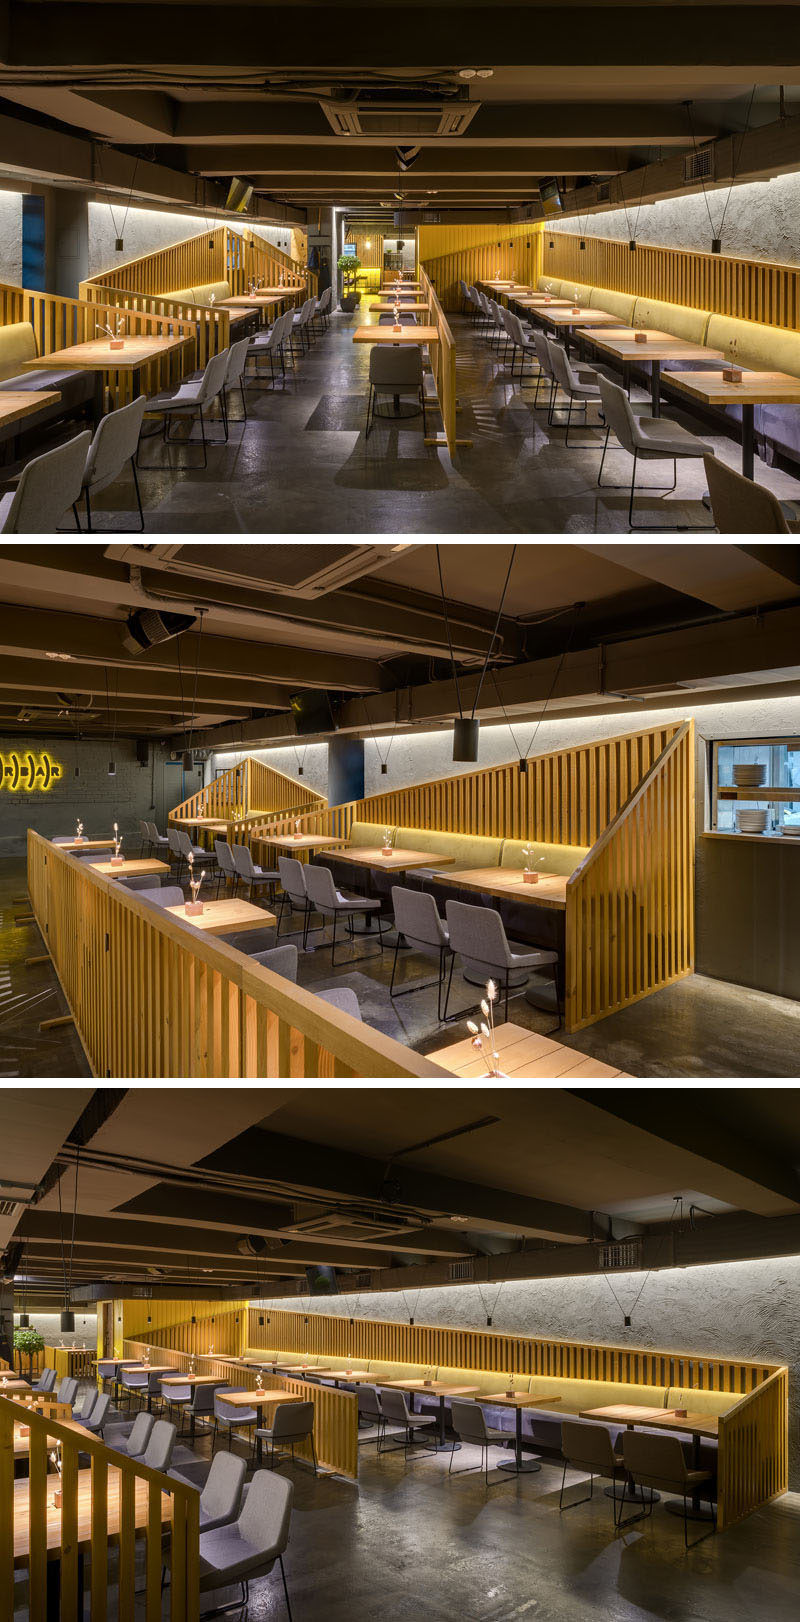 The seating in this modern restaurant and bar is designated with angled wood slat partitions, while banquette seating lines the walls, and hidden lighting gives a soft glow to the dining room. #RestaurantDesign #Interiors #BarDesign